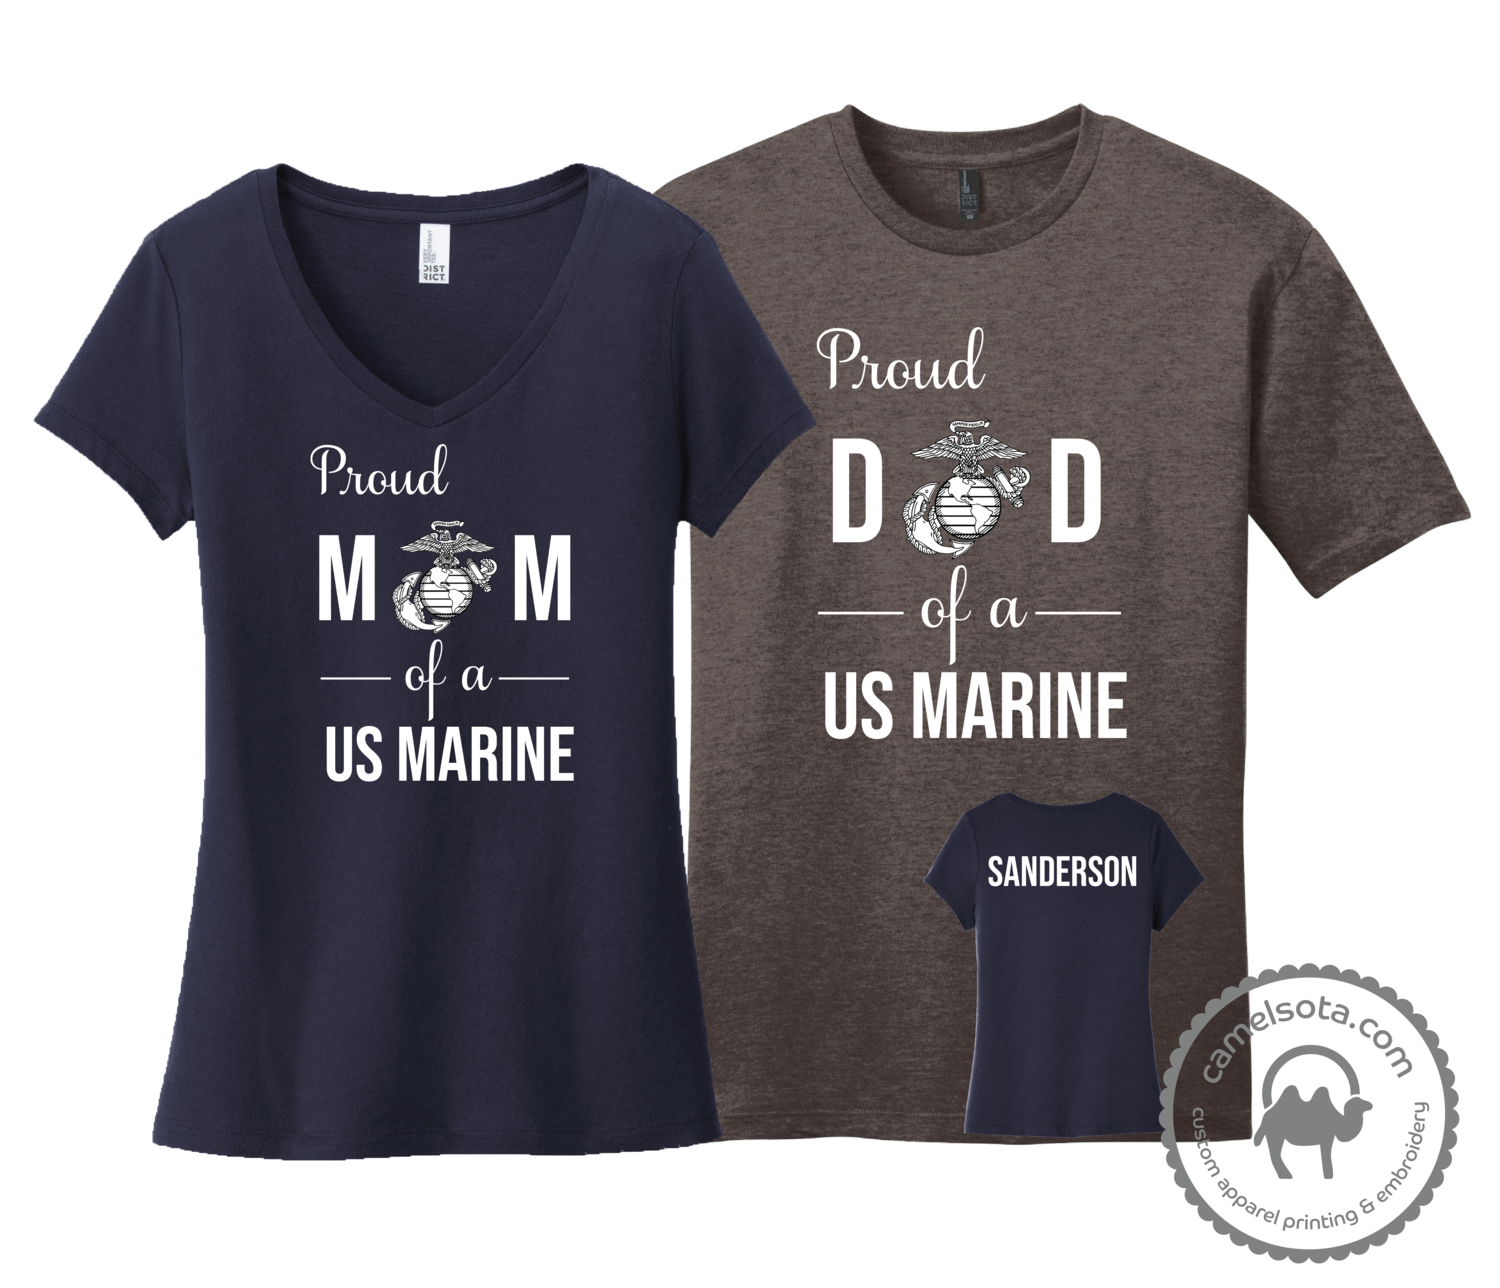 Proud Mom Dad Grandma Grandpa etc of a US Marine Shirt